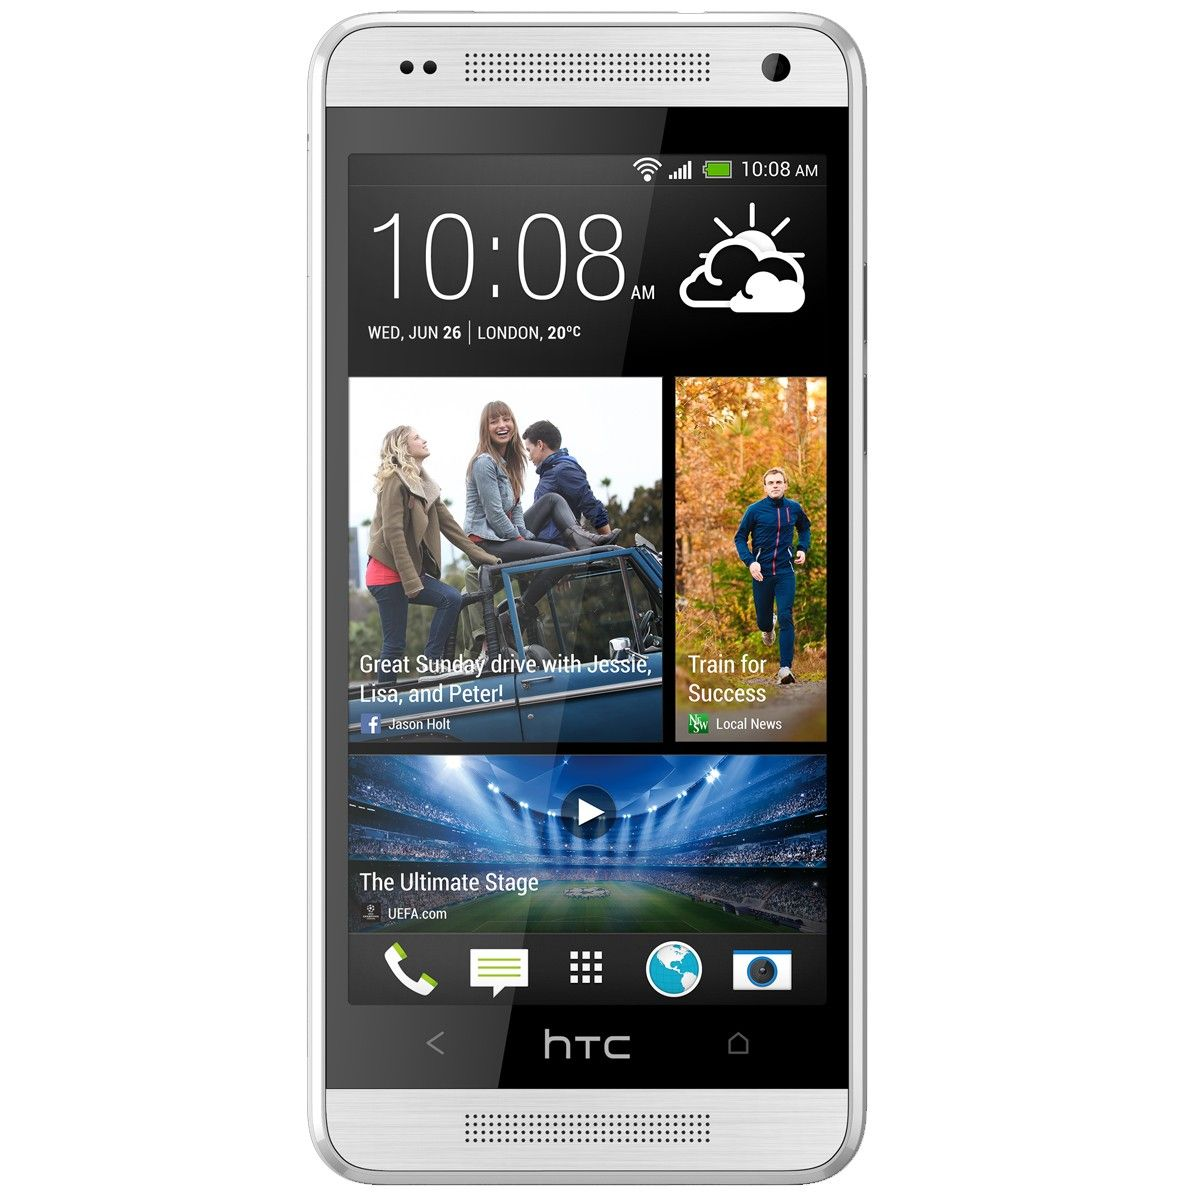 HTC One mini 4G